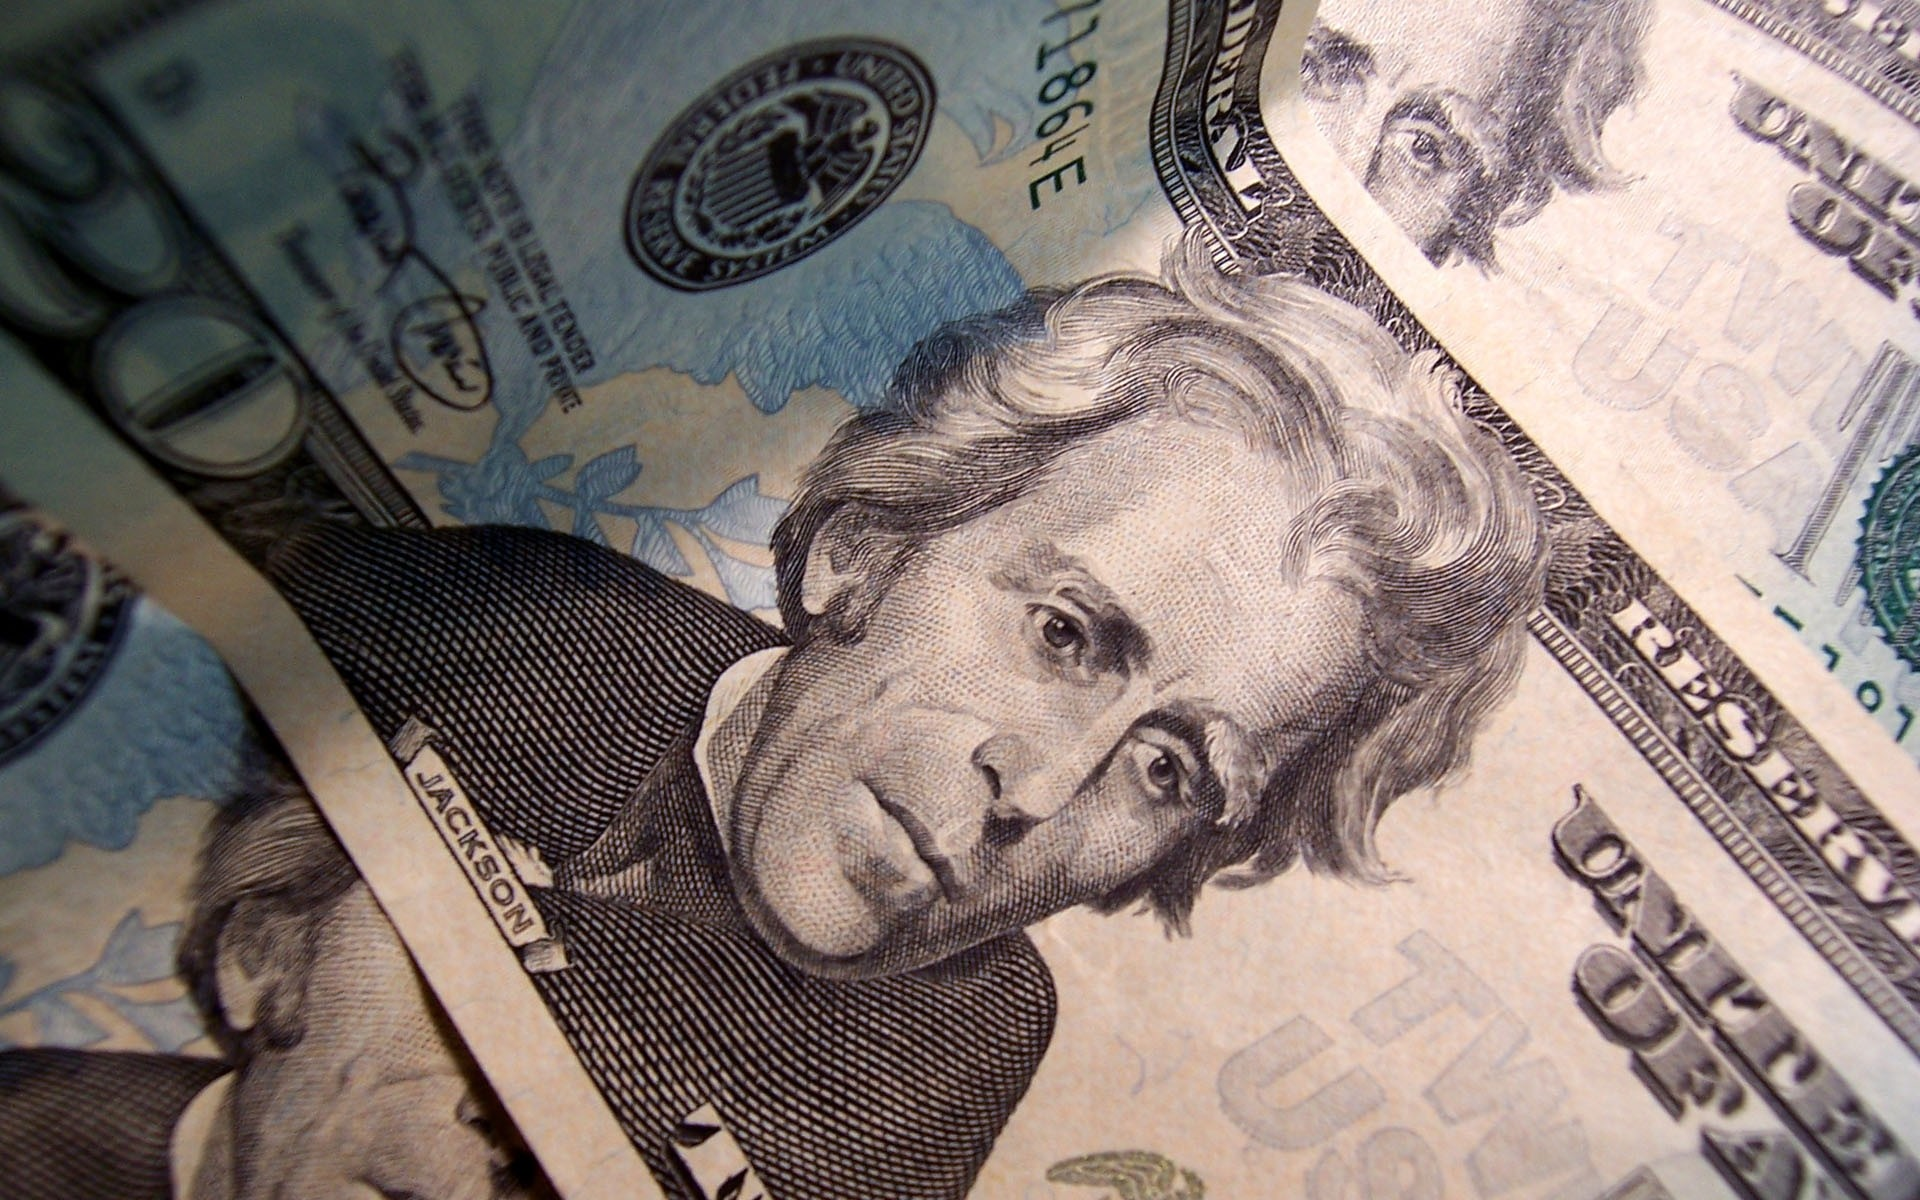 1920x1200 Andrew Jackson on Twenty Dollar Bill wallpaper